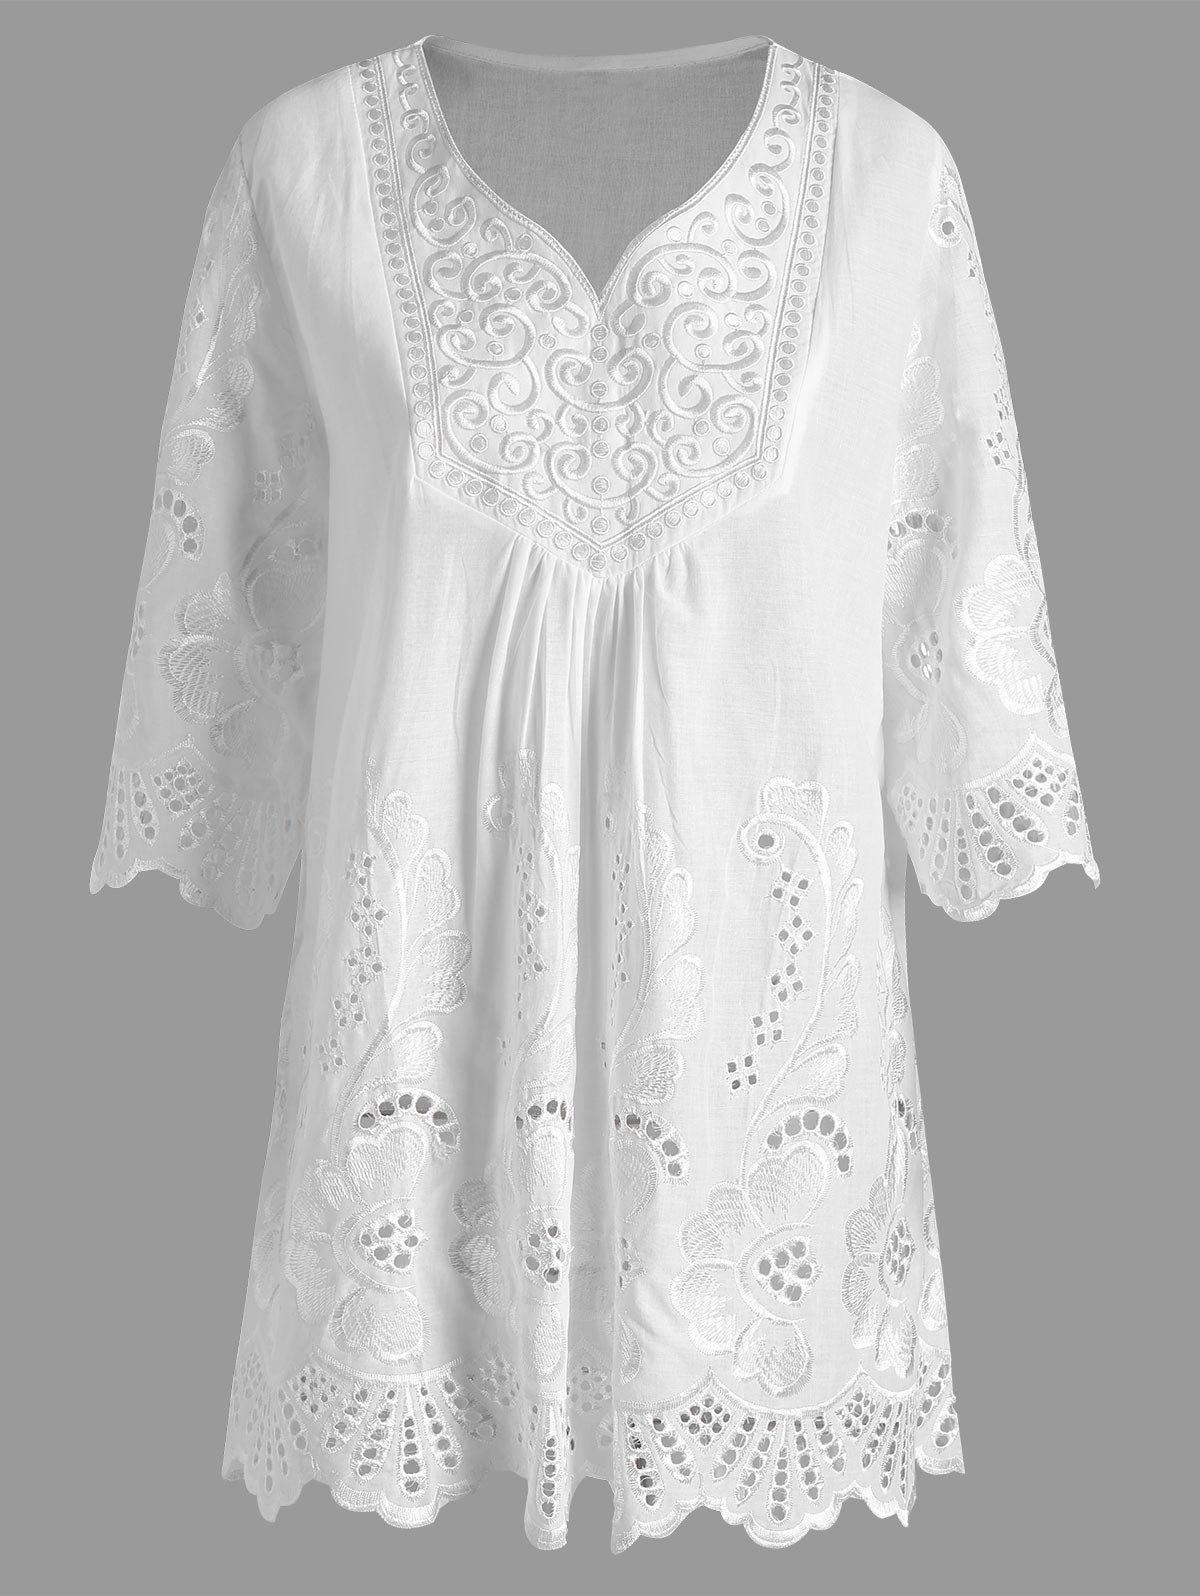 8f0e5d25c4977 2019 Plus Size V Neck Embroidered Tunic Top